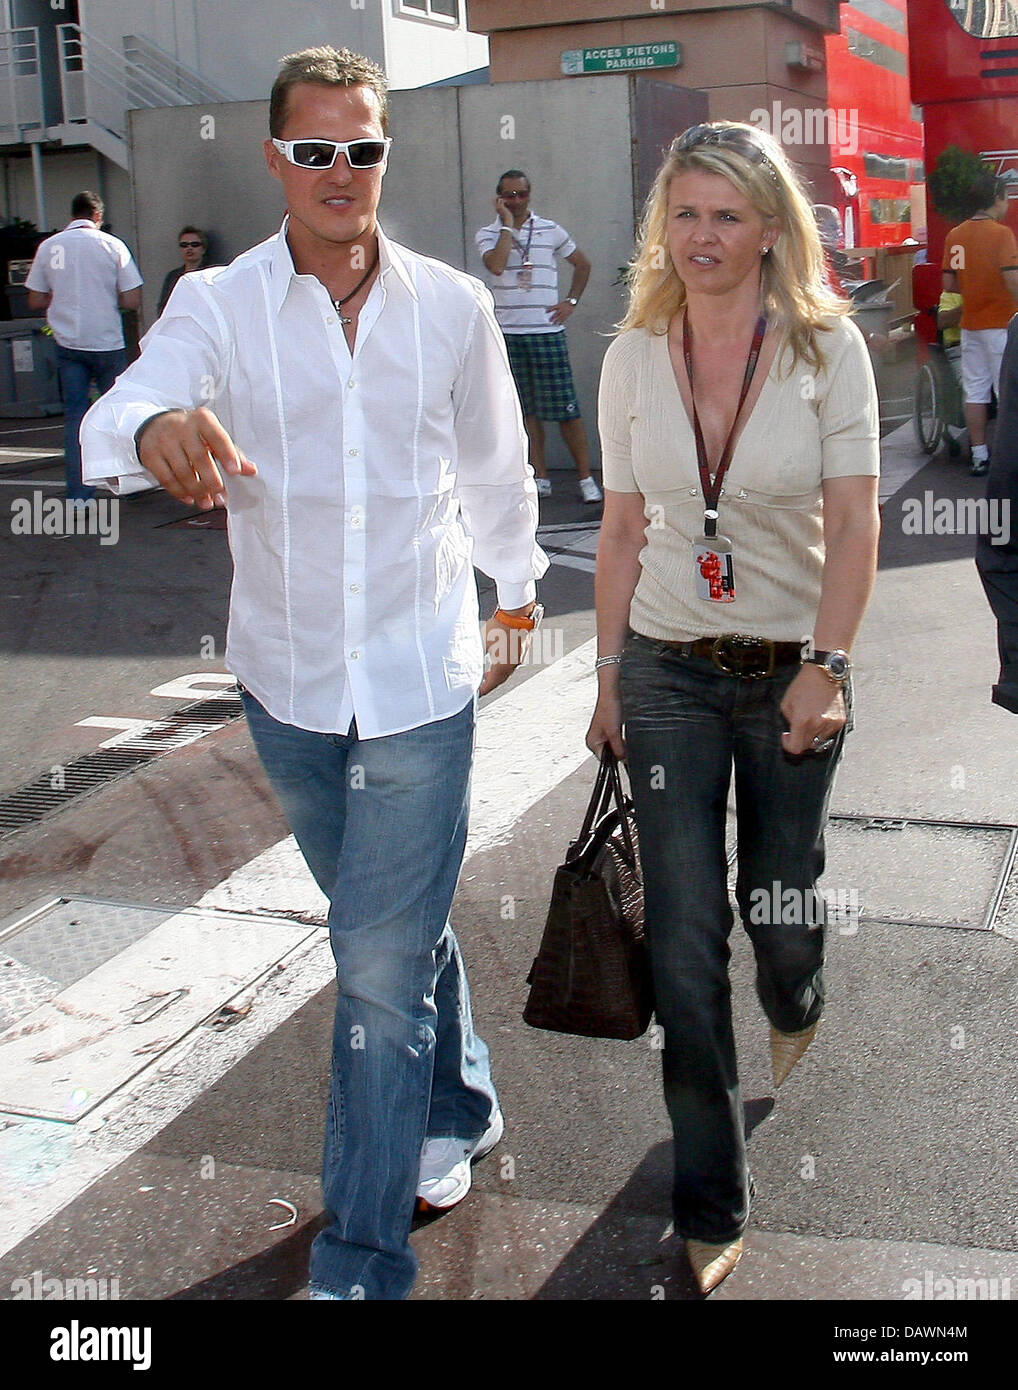 The wife of Michael Schumacher sold his plane 05/12/2015 70